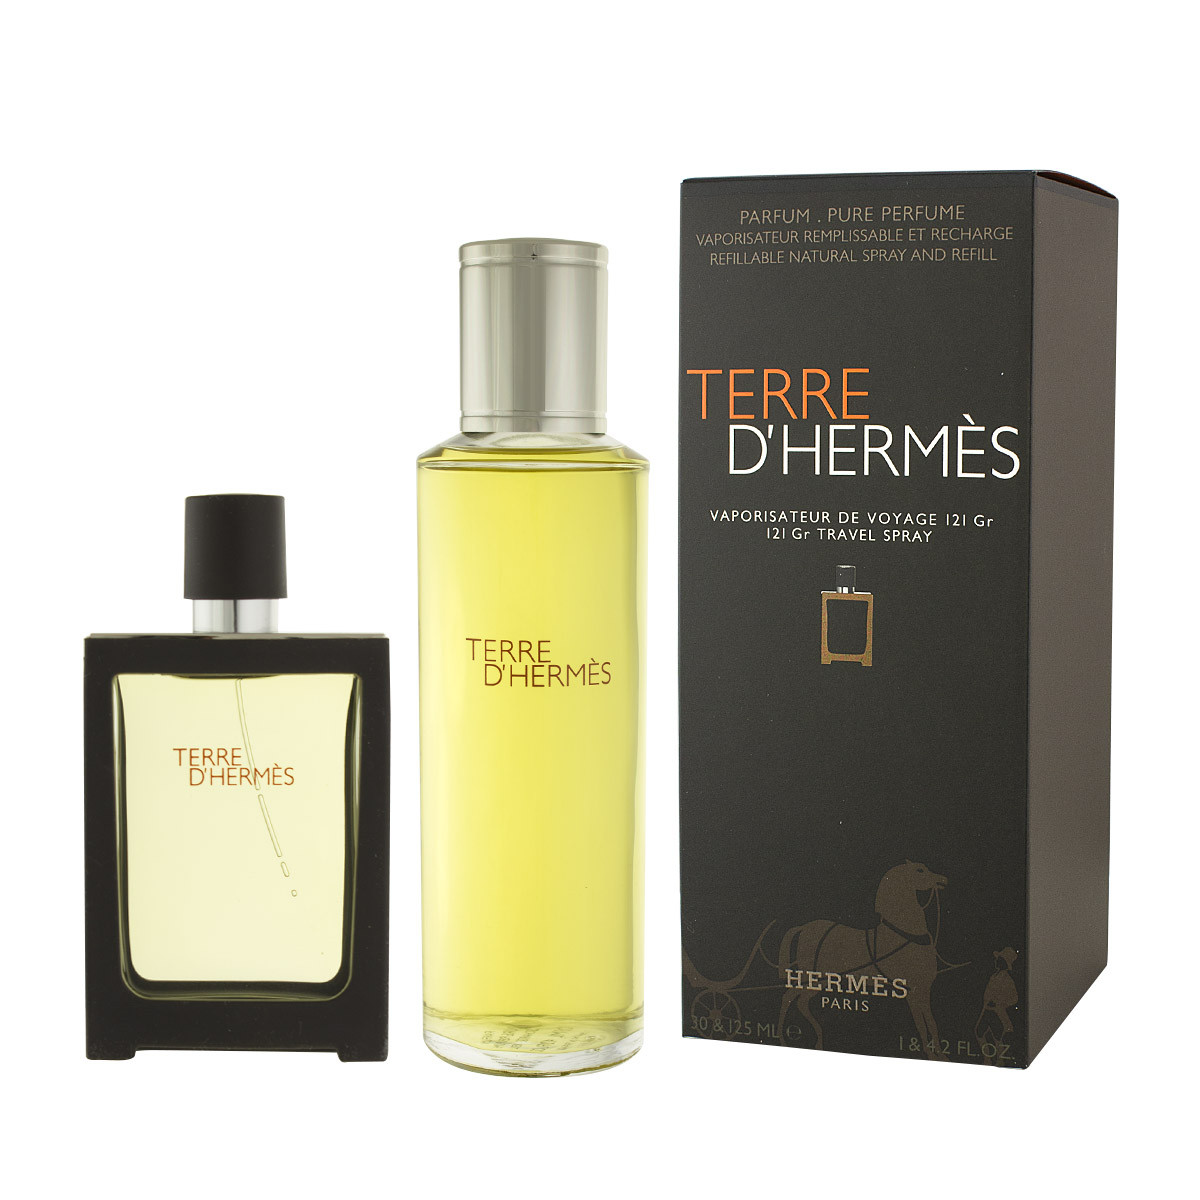 herm s terre d 39 herm s parfum nachf llbar 30 ml parfum. Black Bedroom Furniture Sets. Home Design Ideas